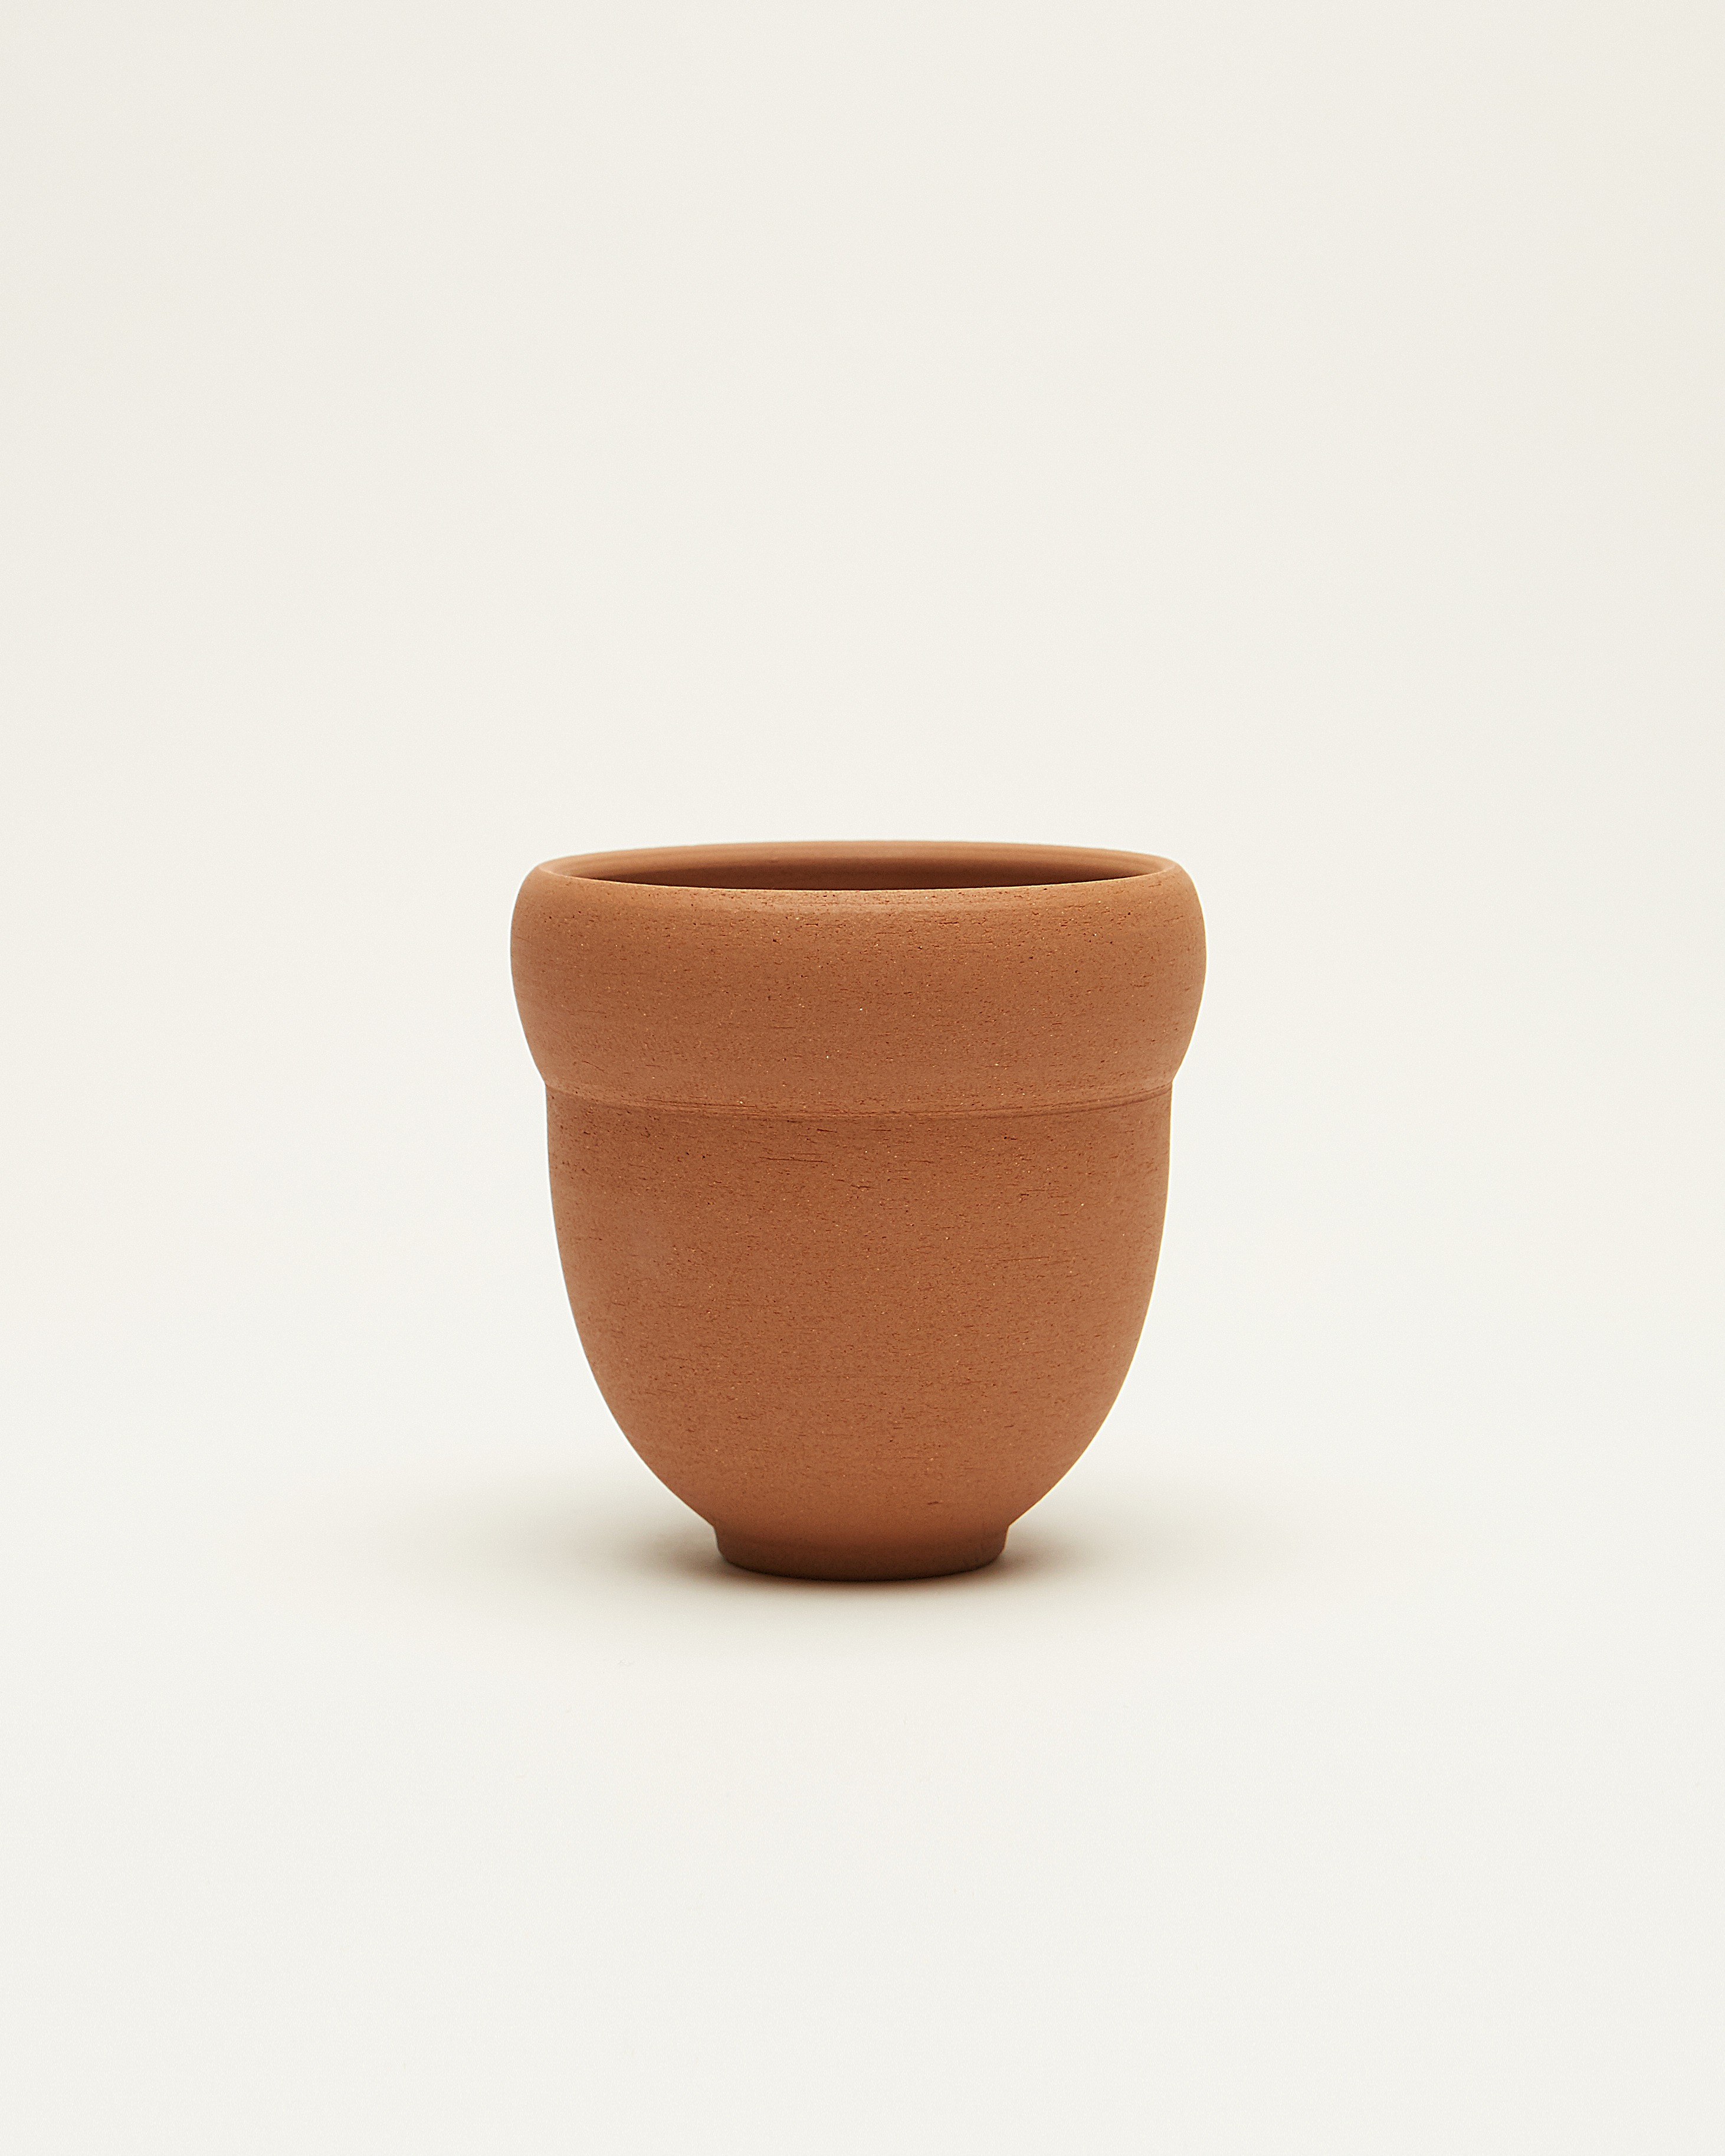 BE NATURAL | Nut pot - XS, S, M